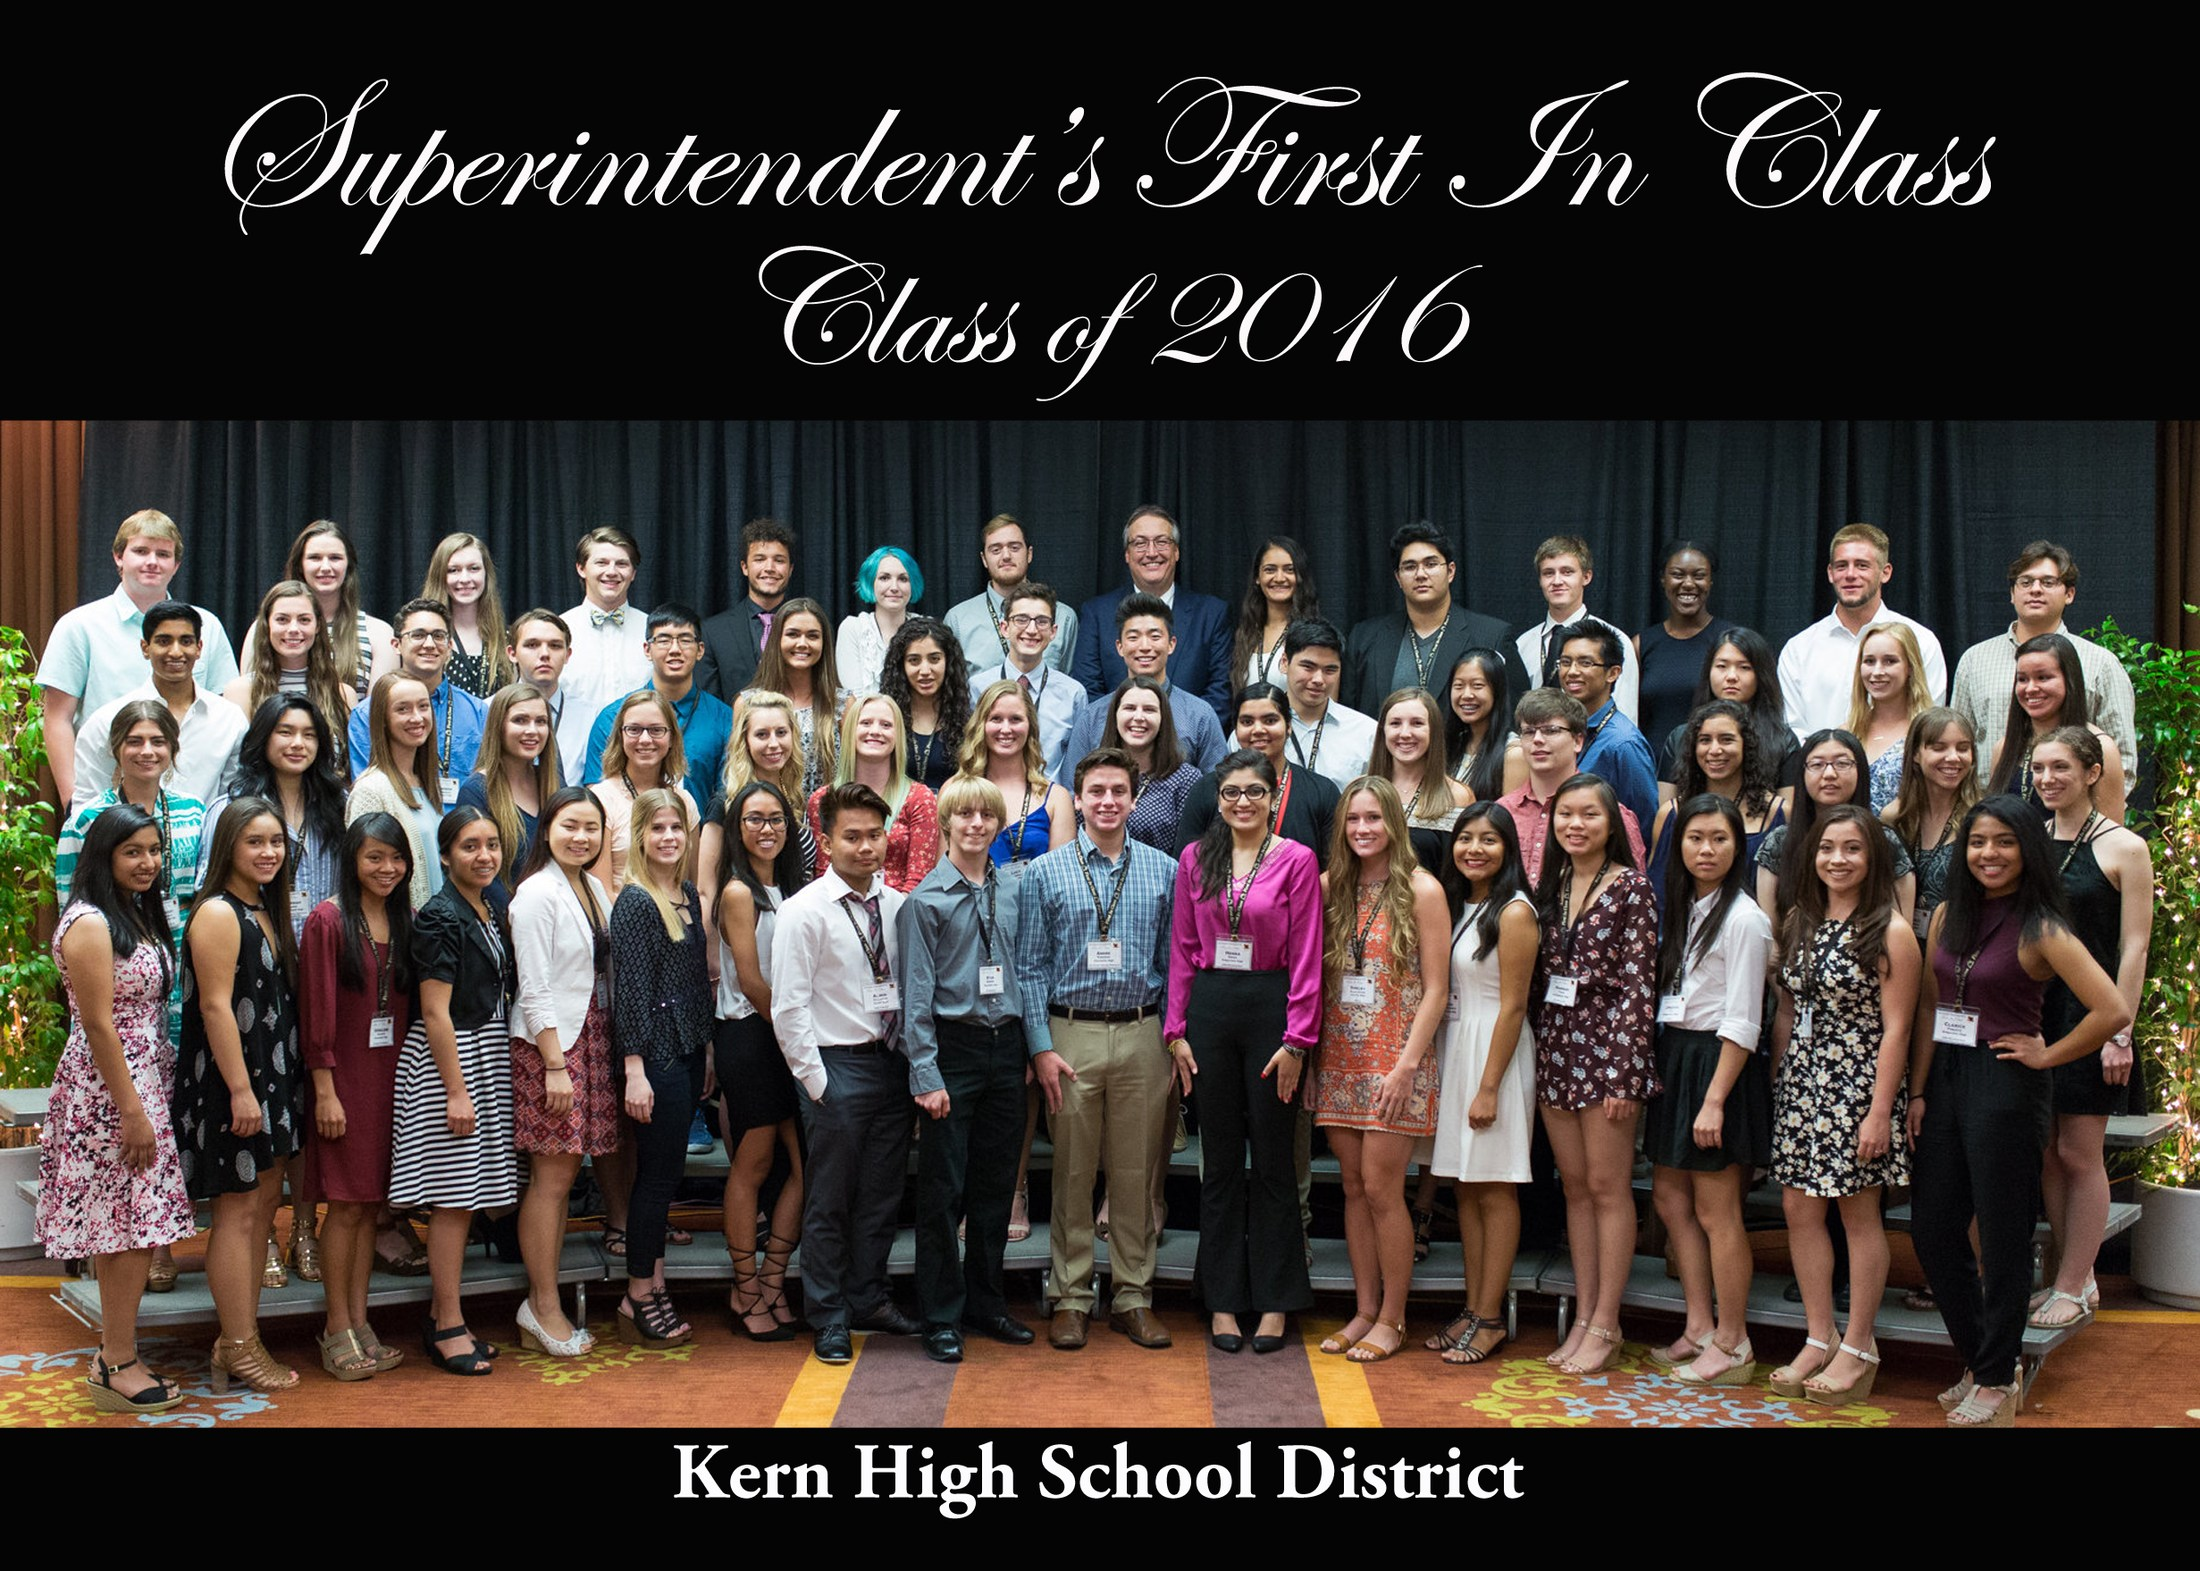 2016 First in Class Award Winners